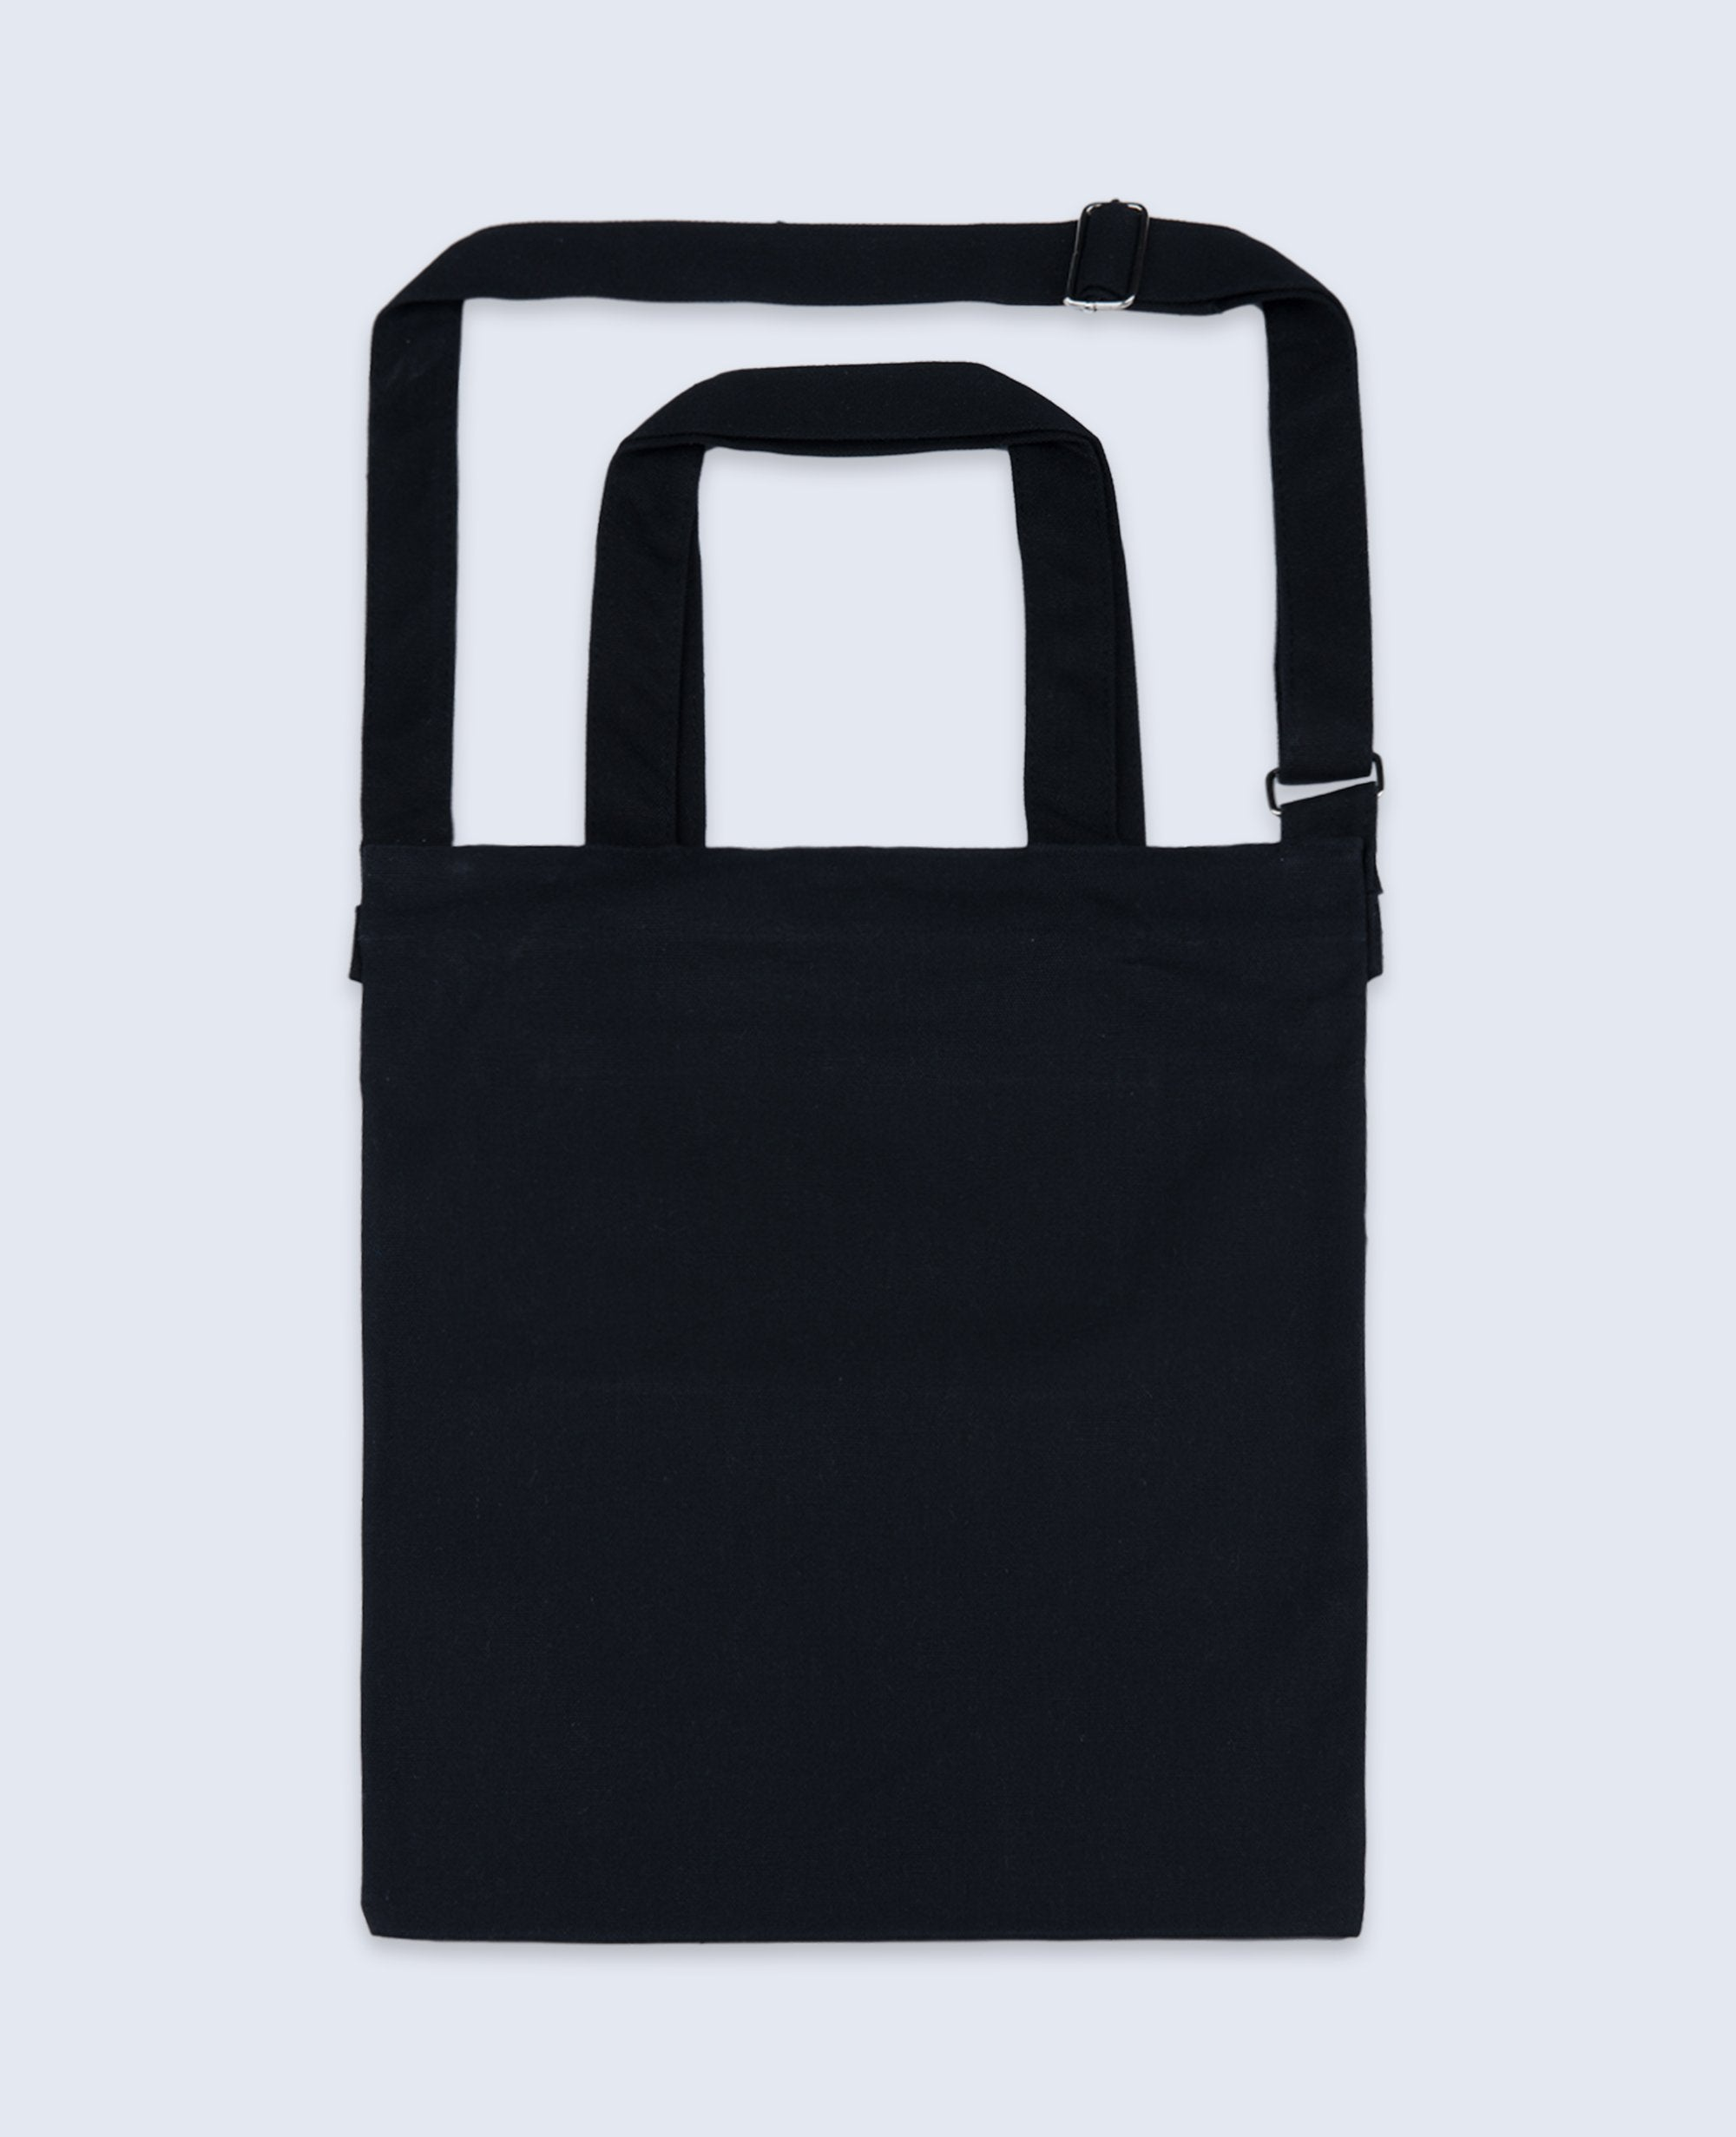 One shoulder Tote bag in Black - Tote bags - BRANMA - BRANMA